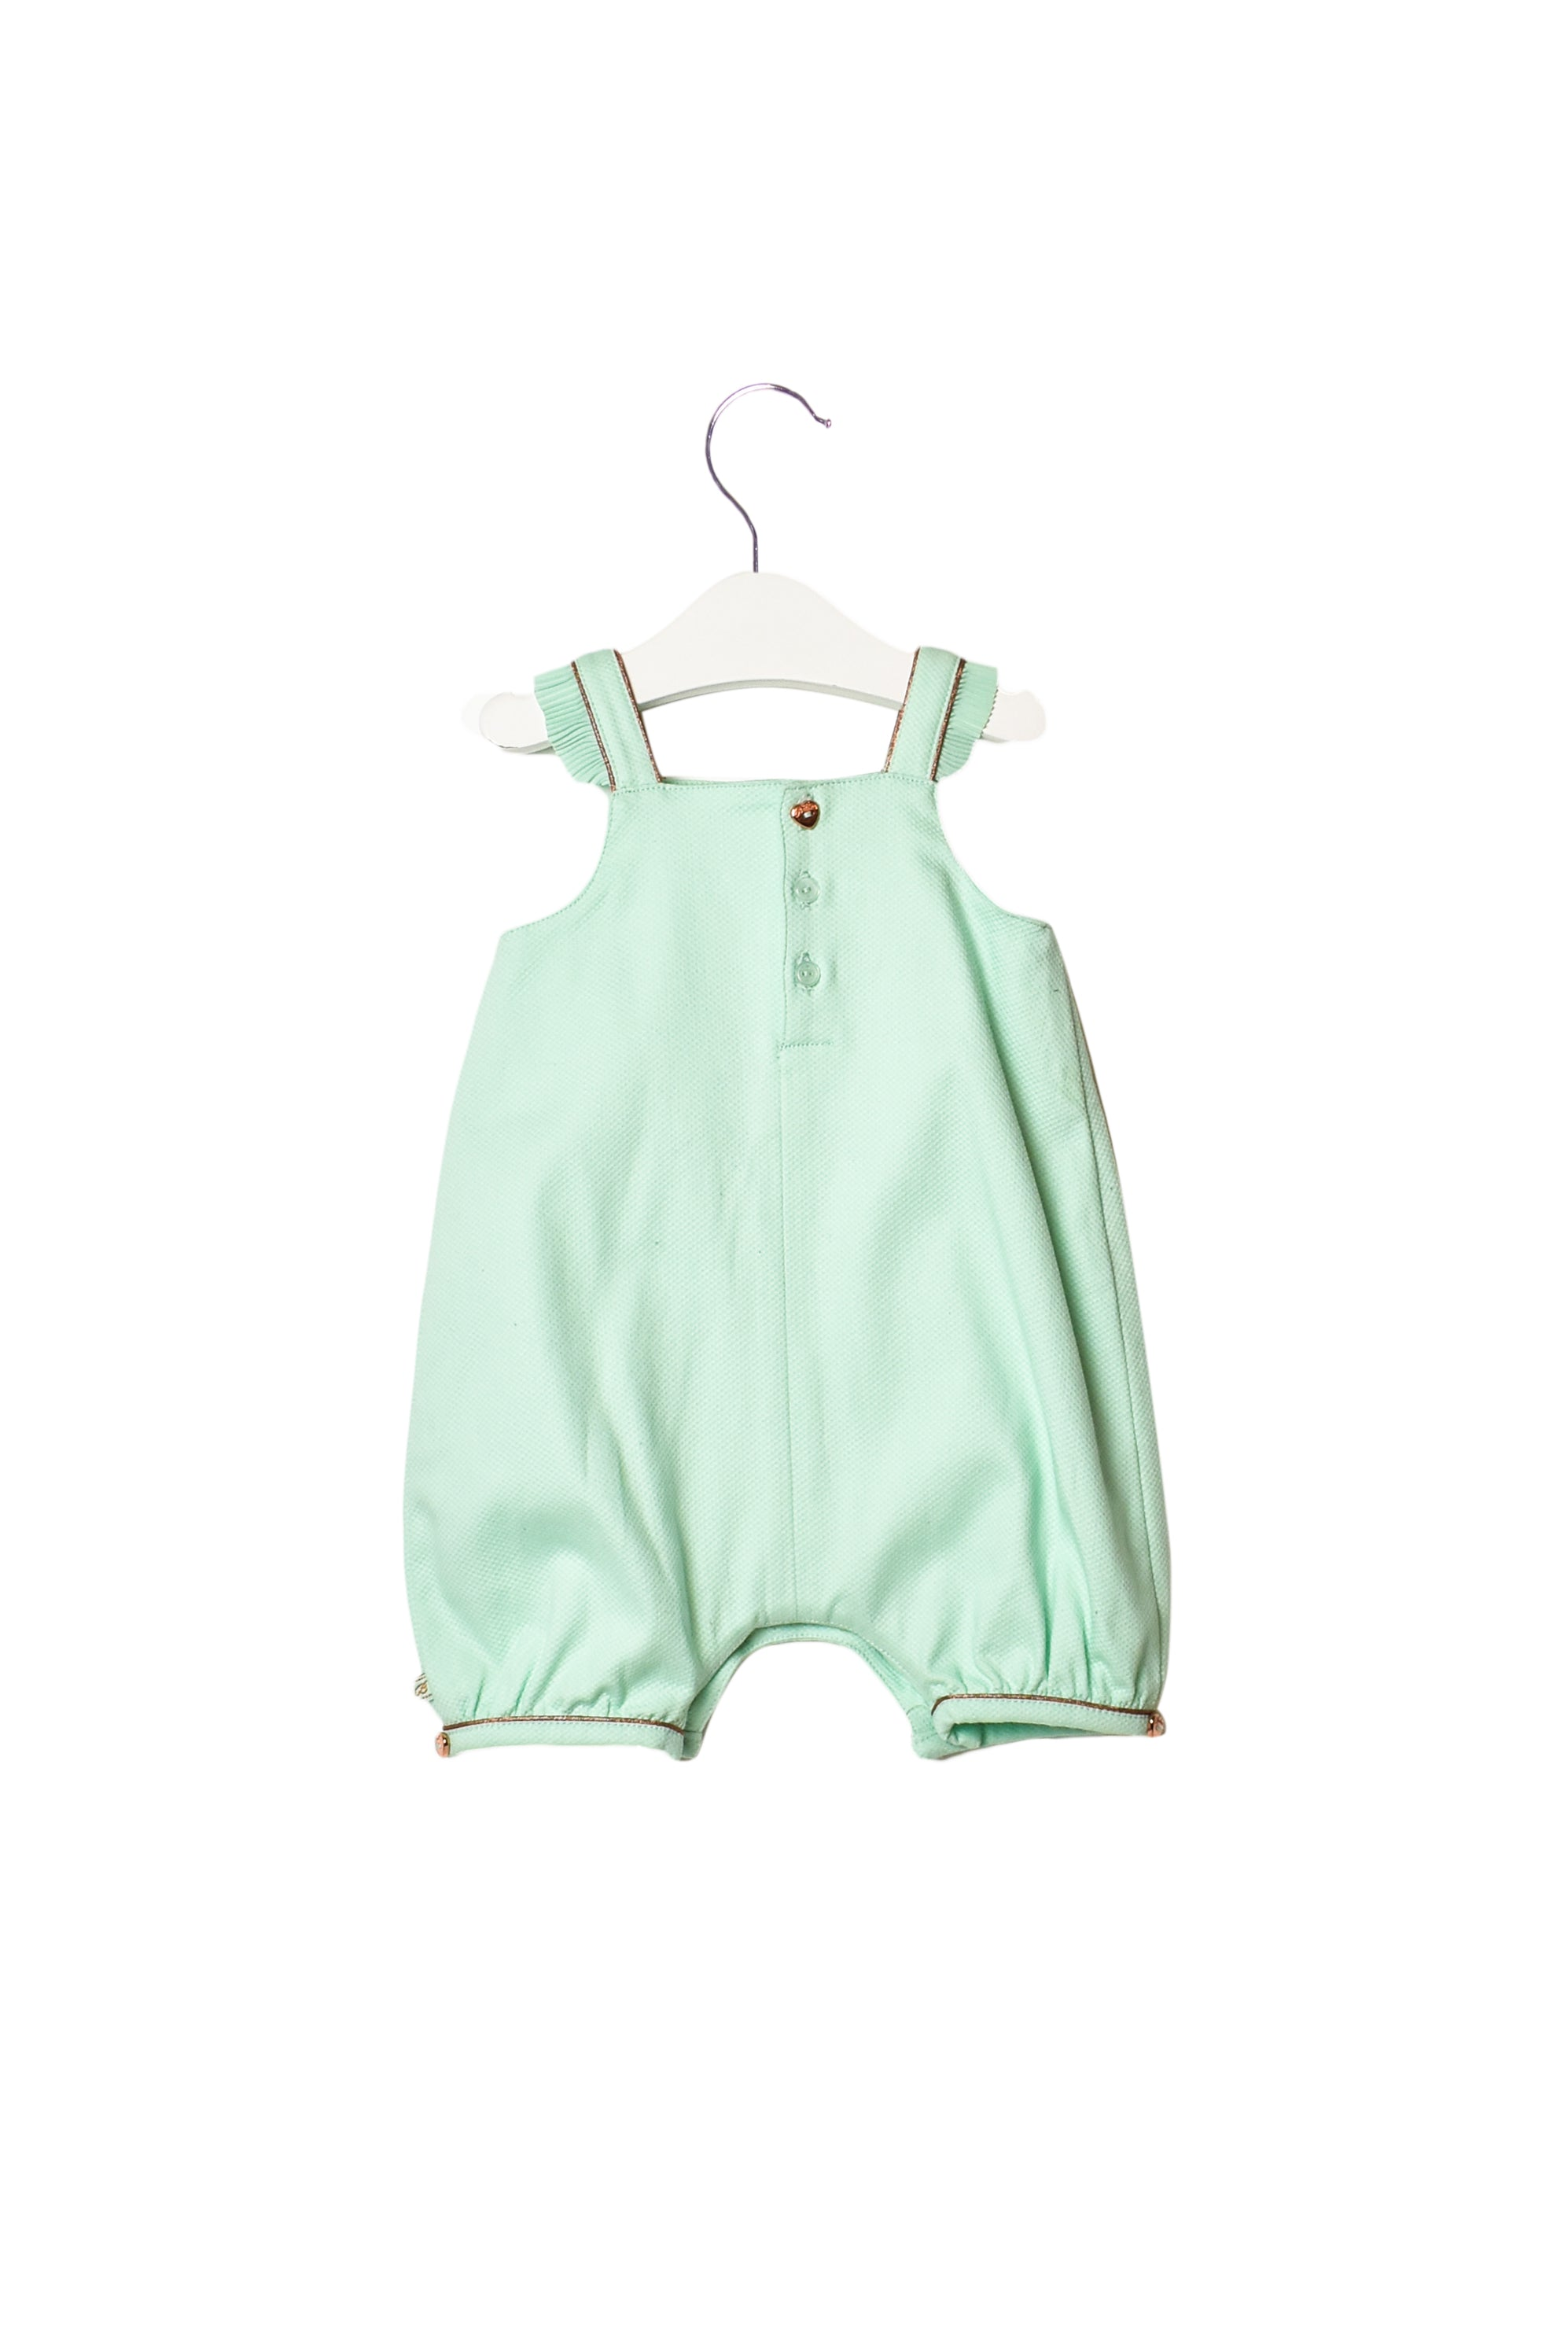 02c6d4549791 10009726 Baker by Ted Baker Baby~Romper and Hat Set 3-6M at Retykle